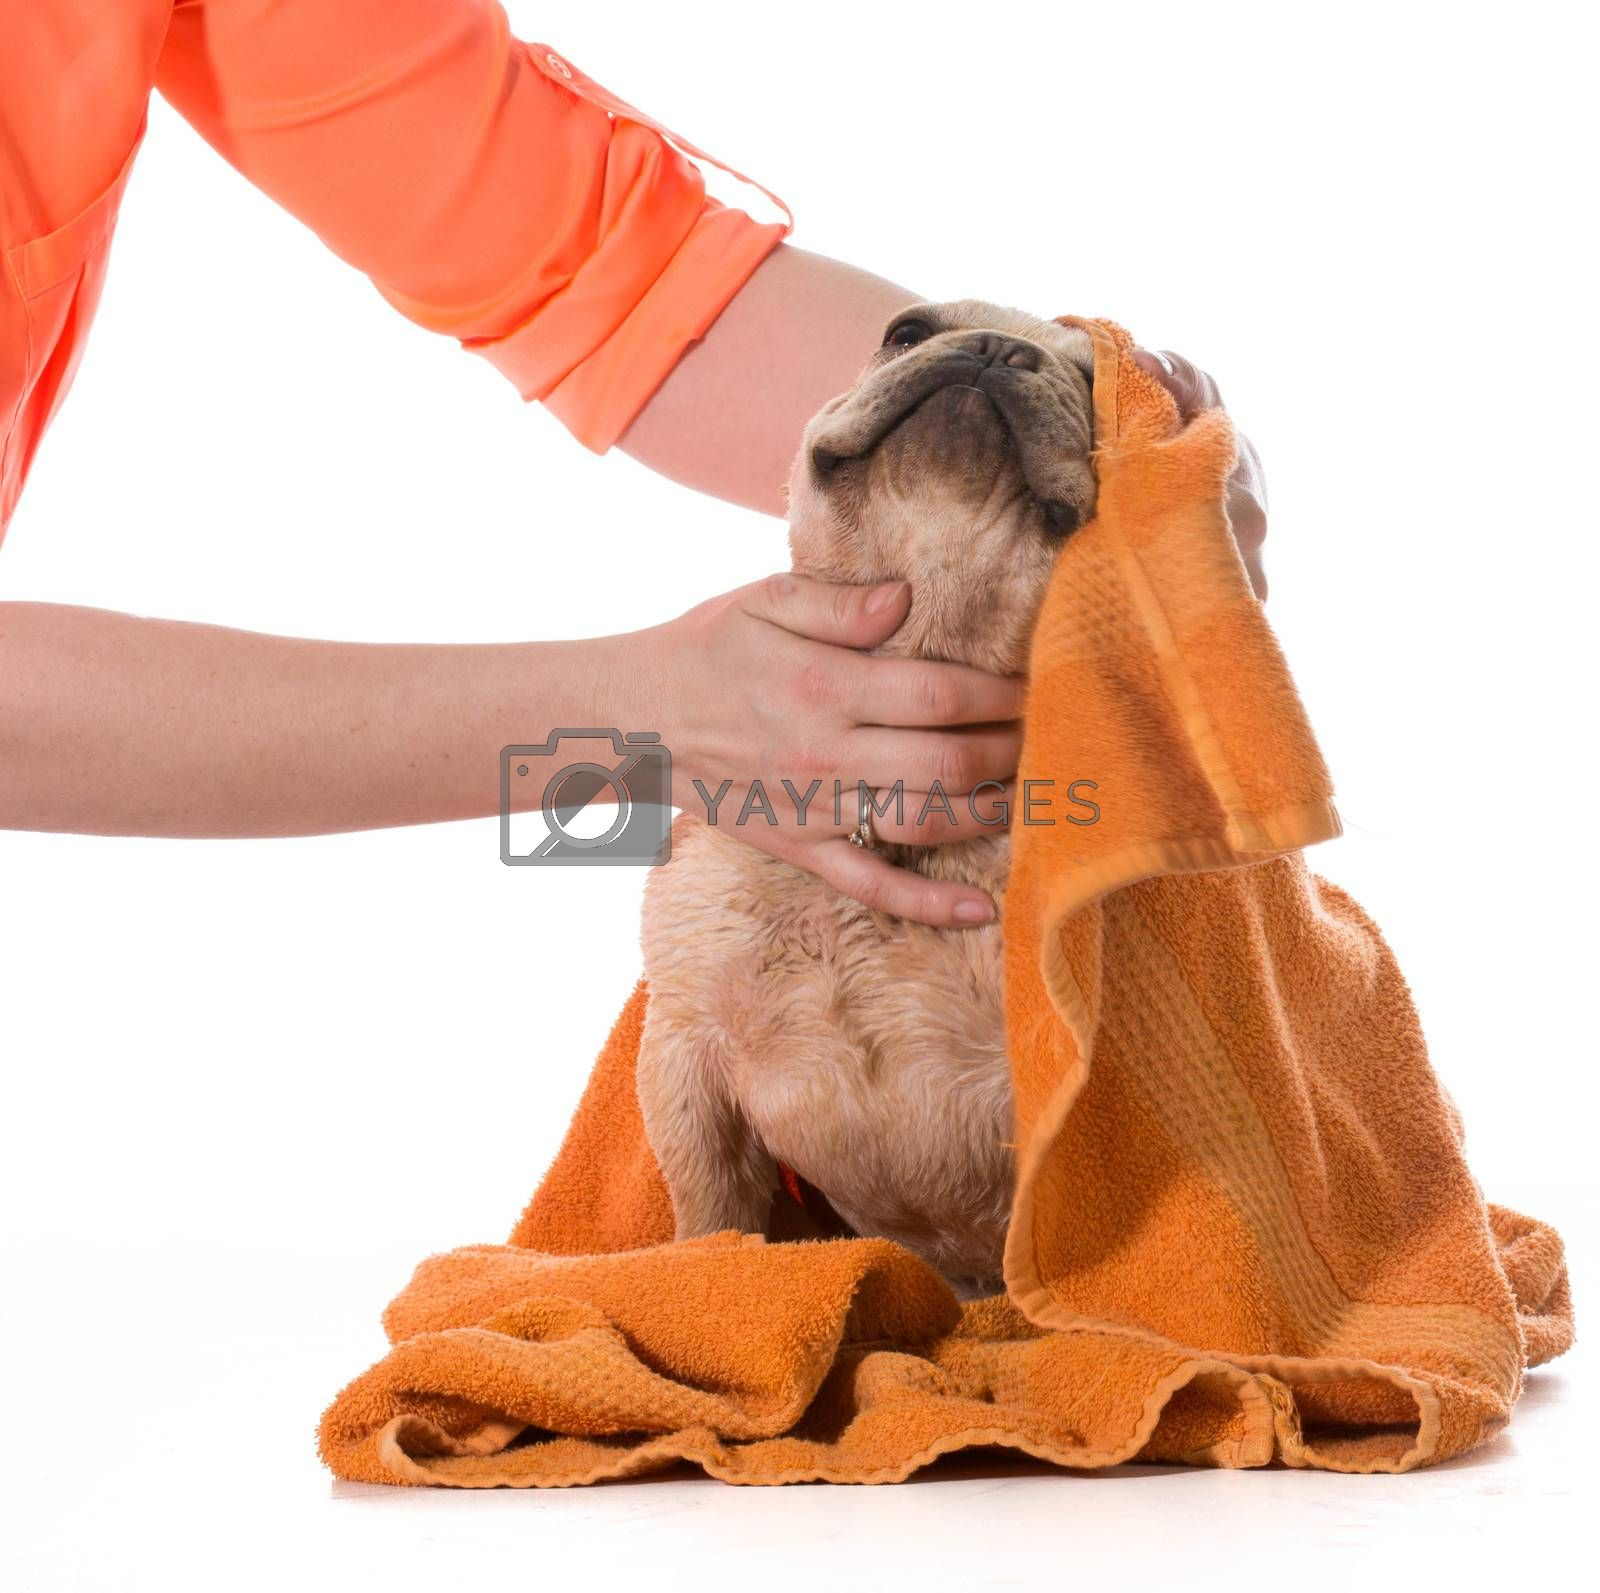 Royalty free image of dog bath by willeecole123